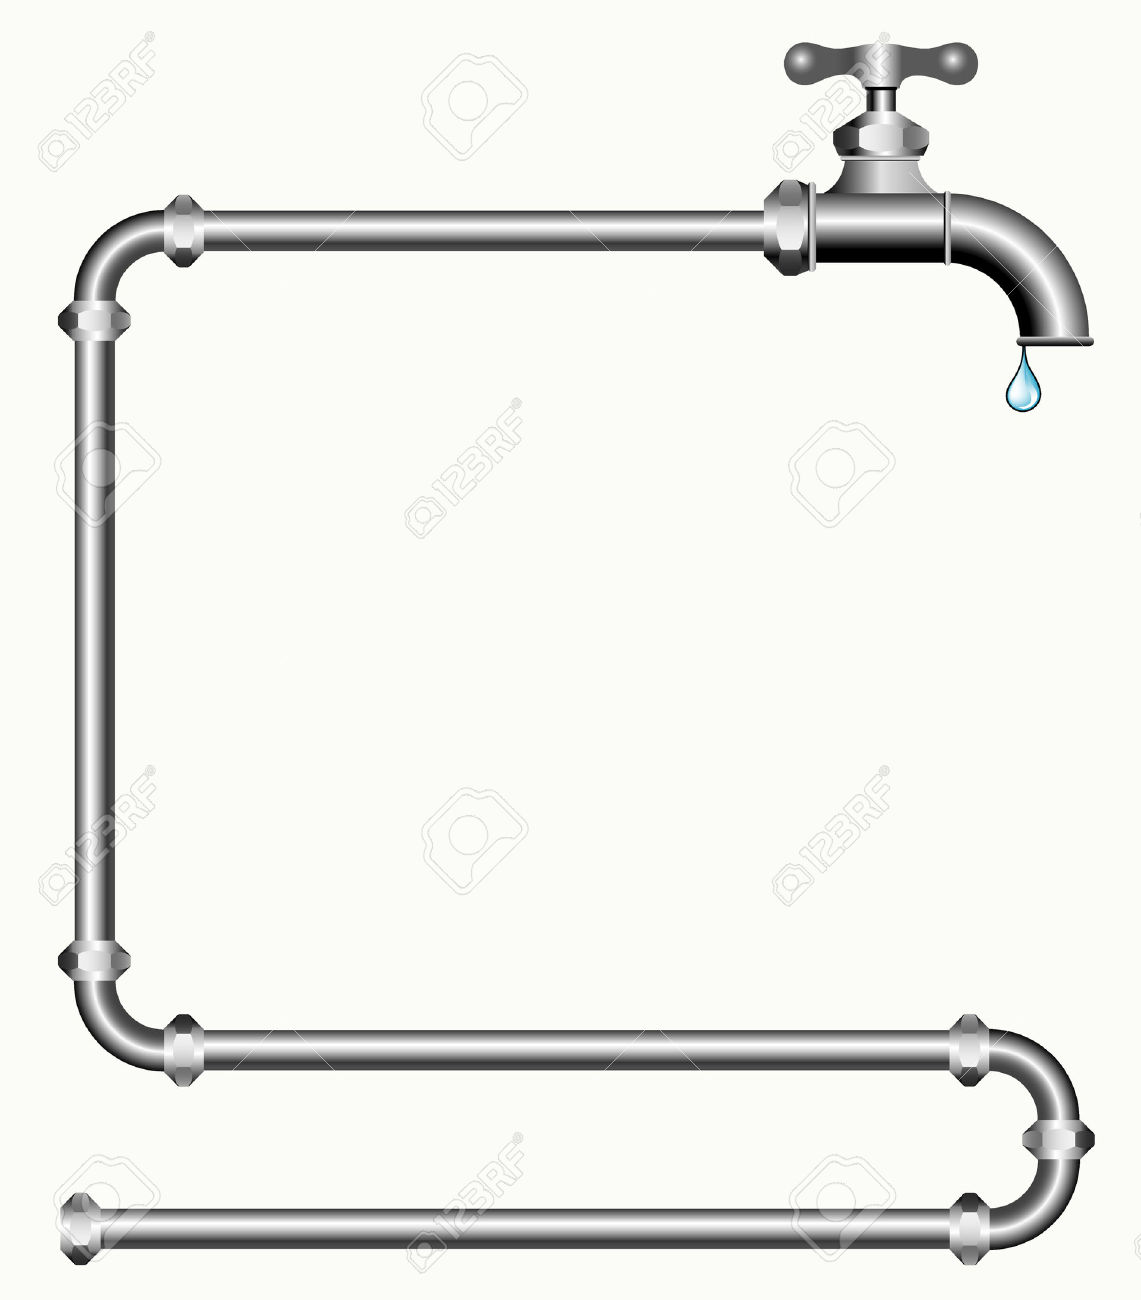 clipart water pipe